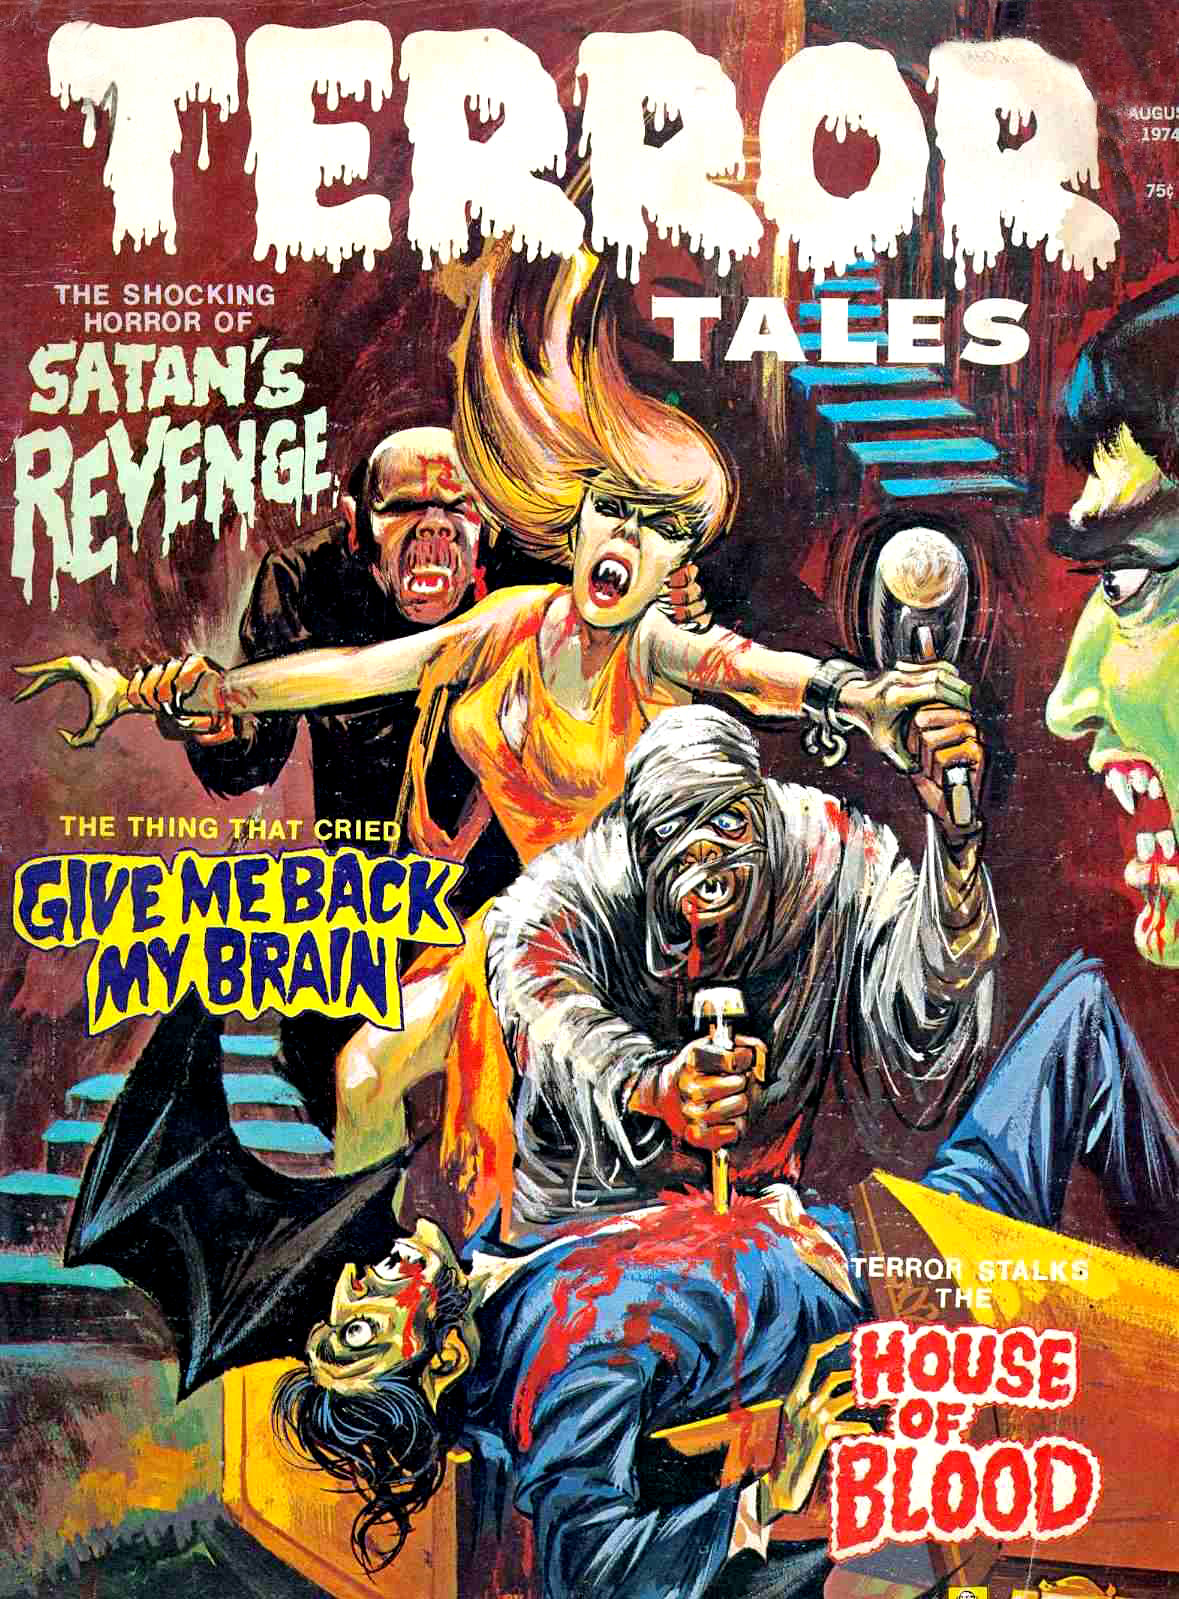 Terror Tales Vol. 06 #4 (Eerie Publications, 1974)